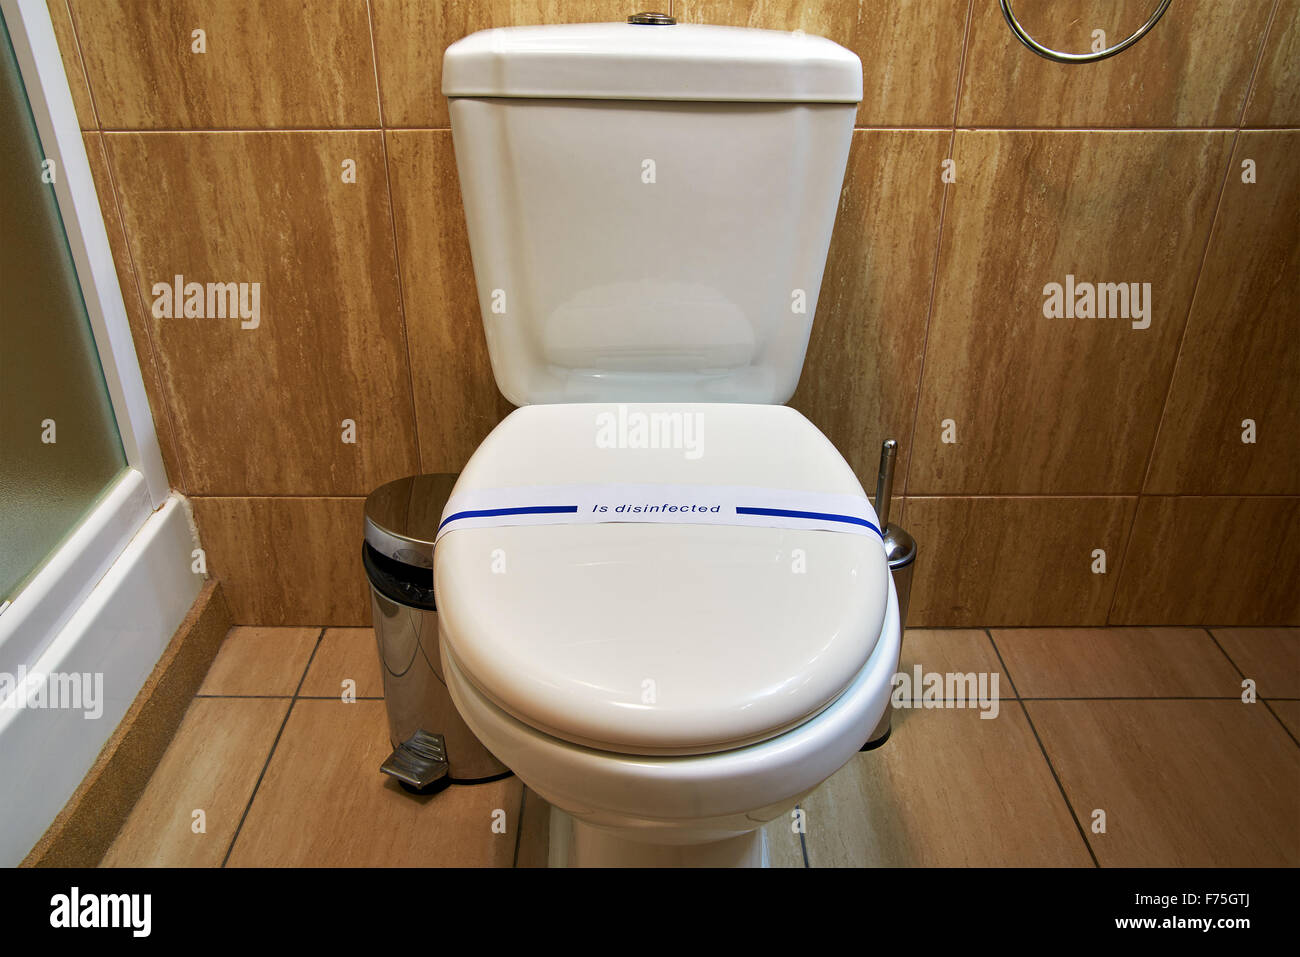 Flush toilet lavatory bathroom with disinfected sign Stock Photo ...